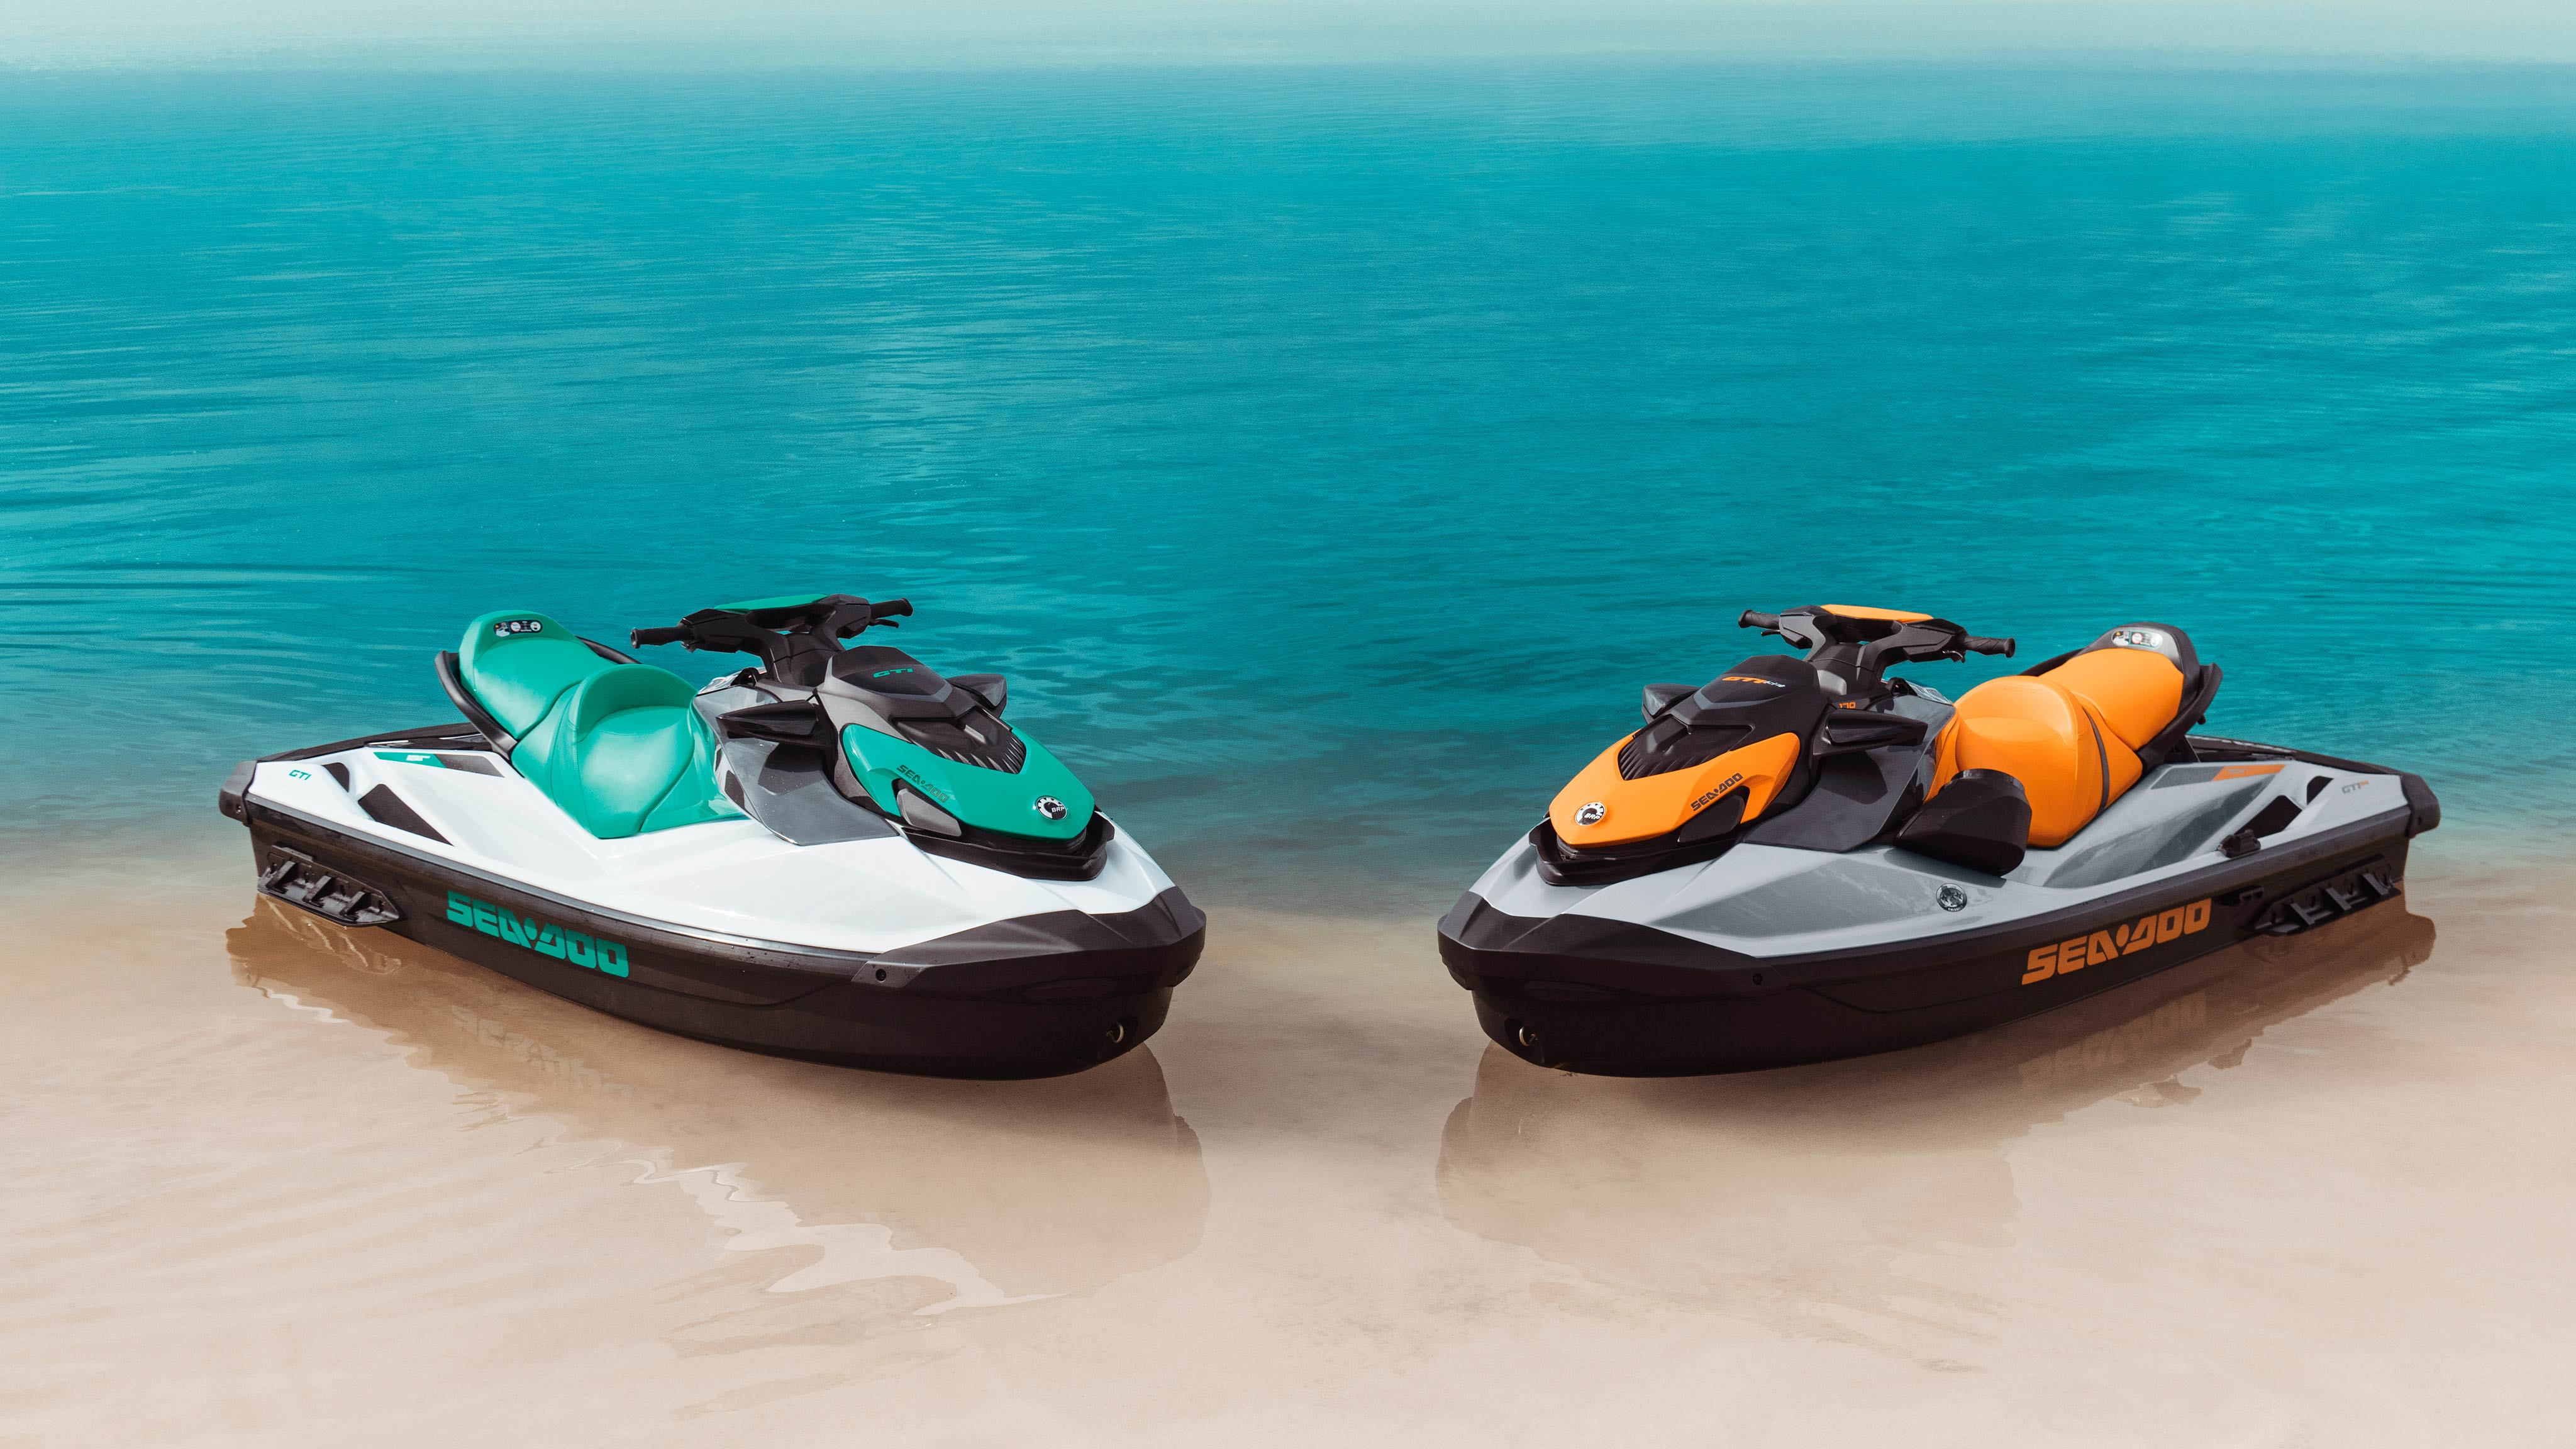 Beauty Shot of a Sea-Doo GTI on the water